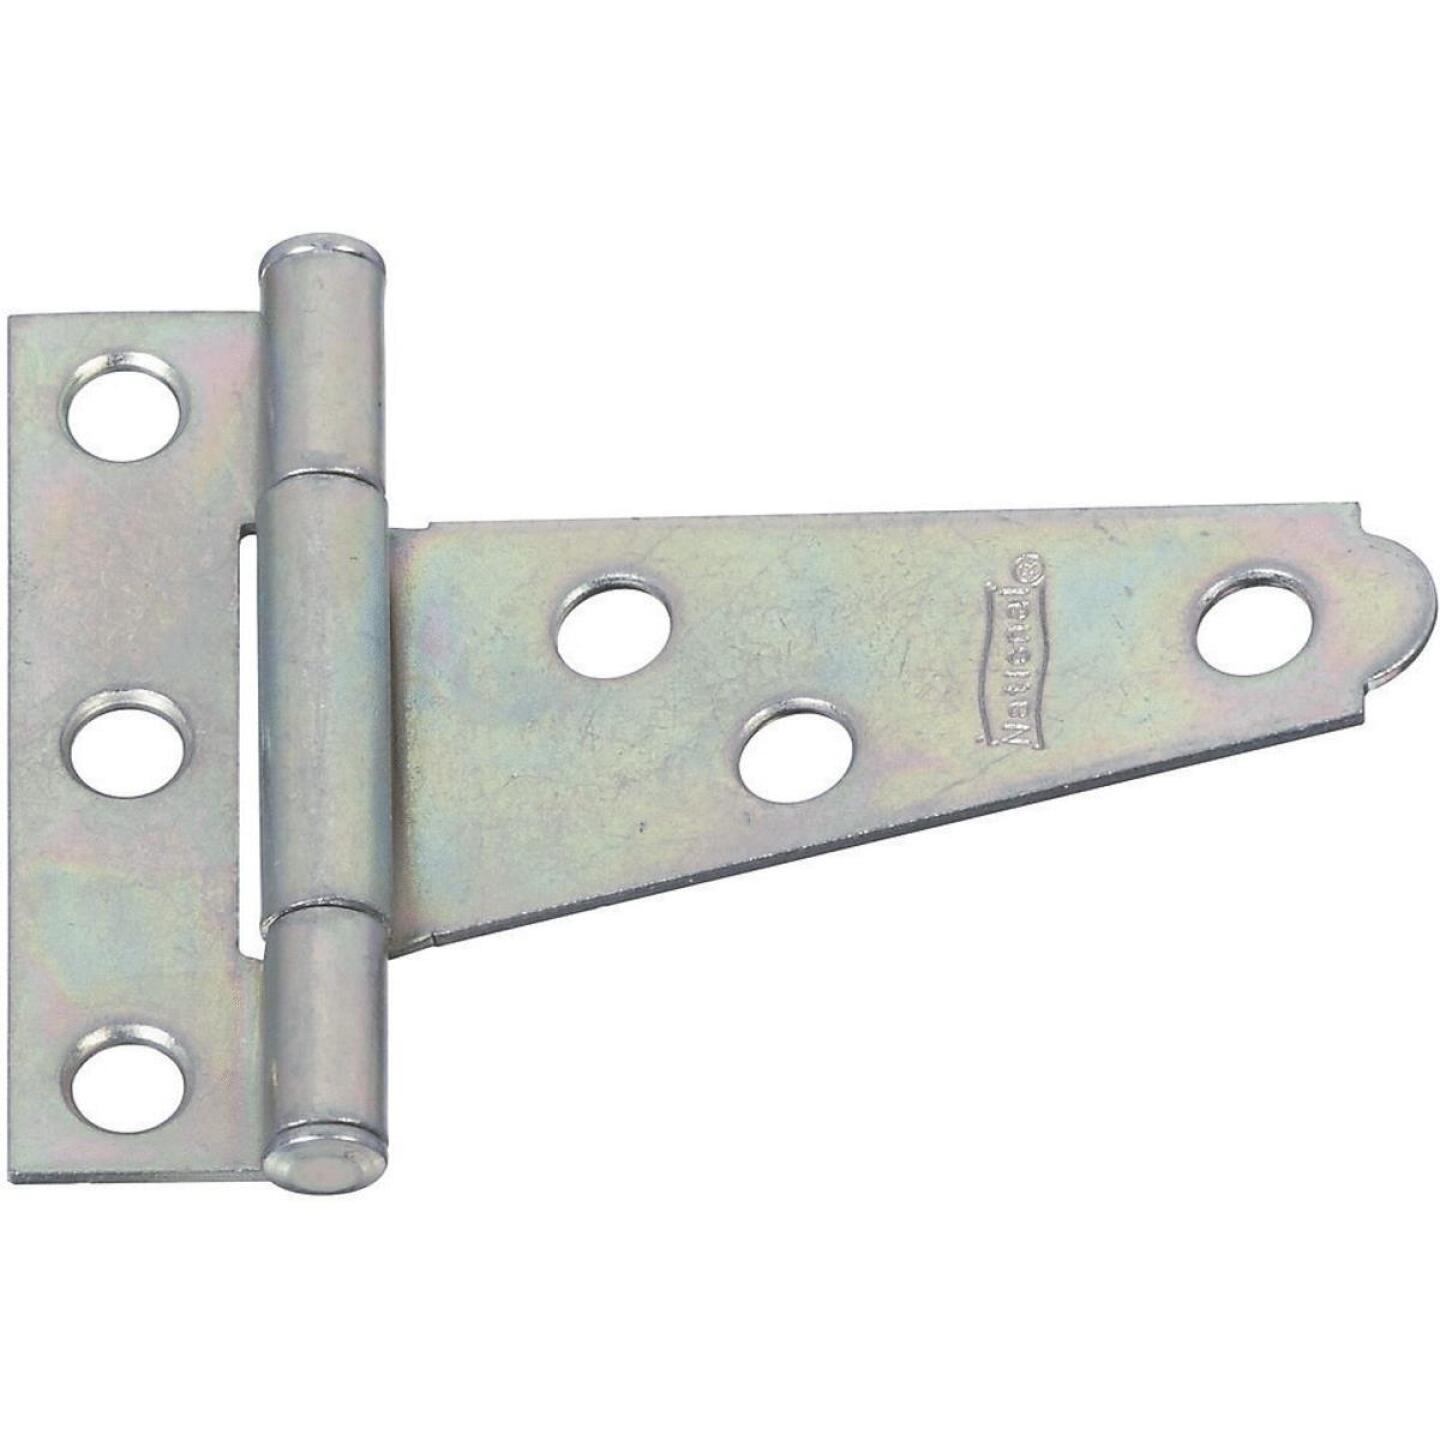 National 2 In. Light Duty T-Hinge With Screw (2 Count) Image 1